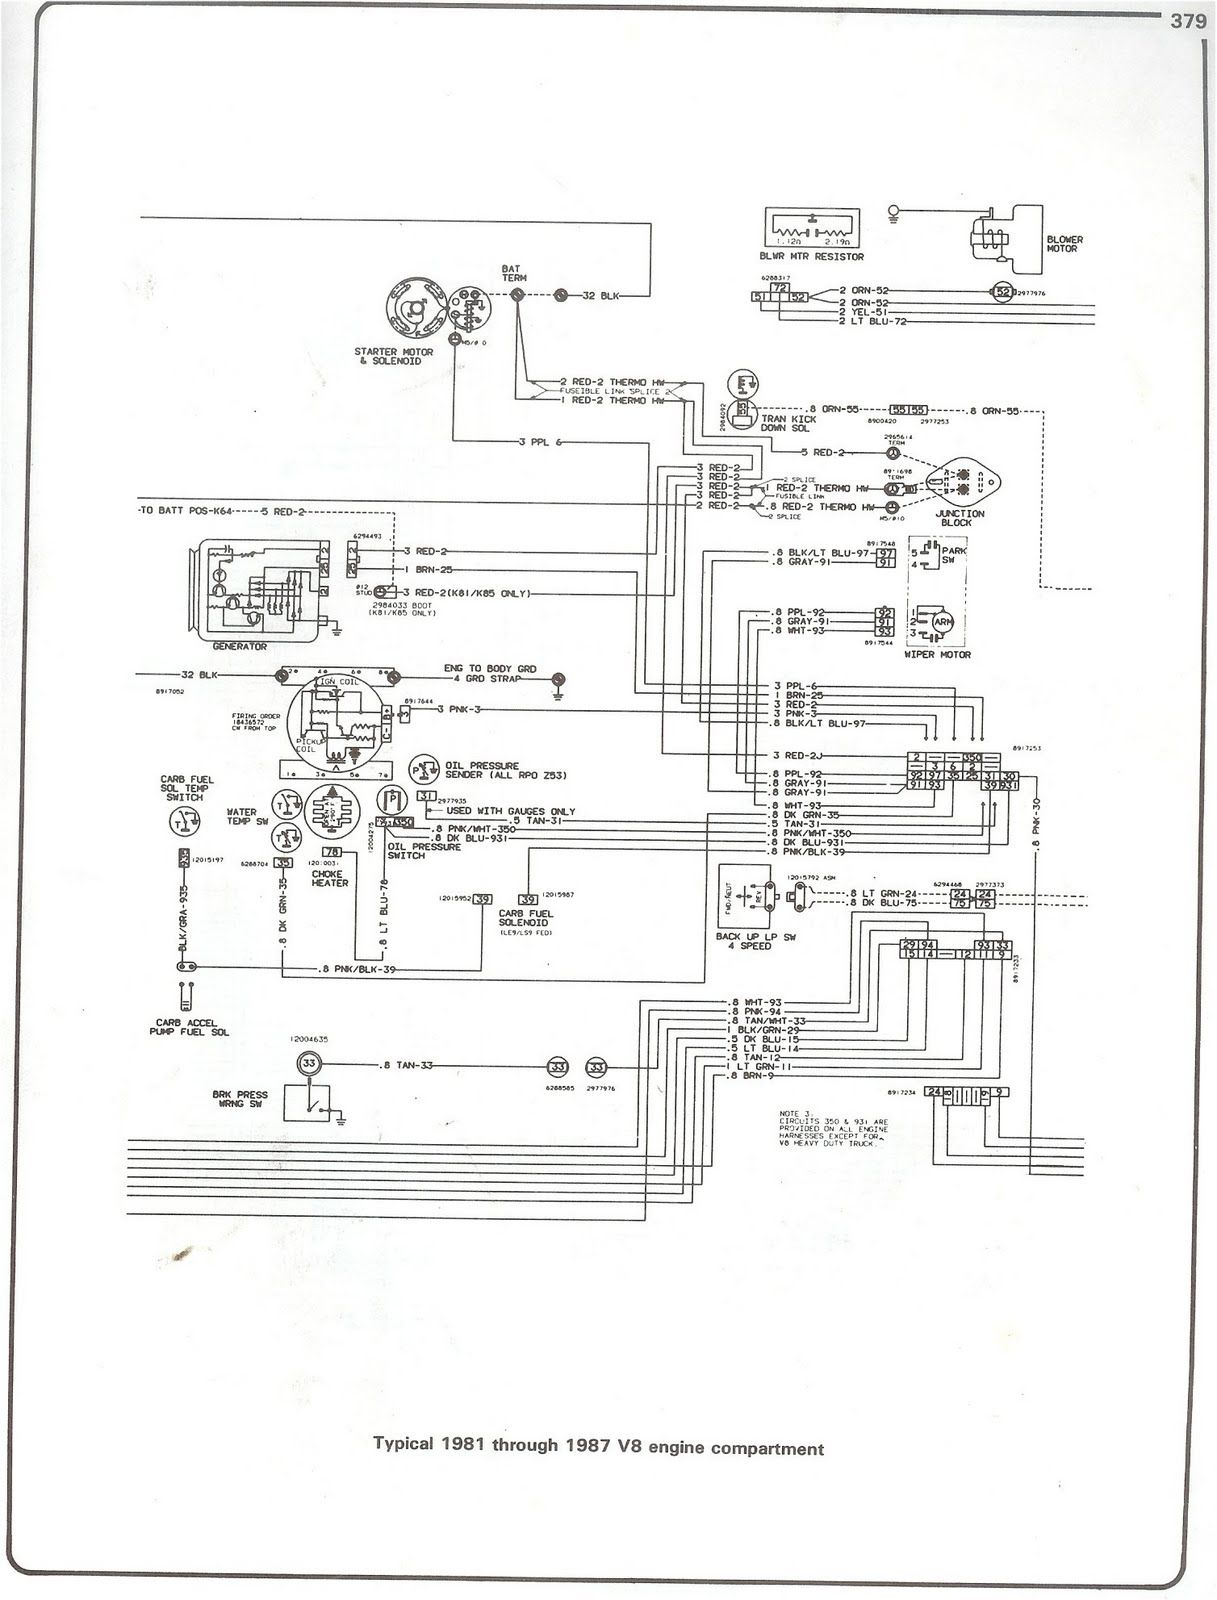 1987 Chevy Dual Fuel Tank Wiring Example Electrical Diagram 1986 Chevrolet Engine Detailed Schematics Rh Lelandlutheran Com 1976 Ford